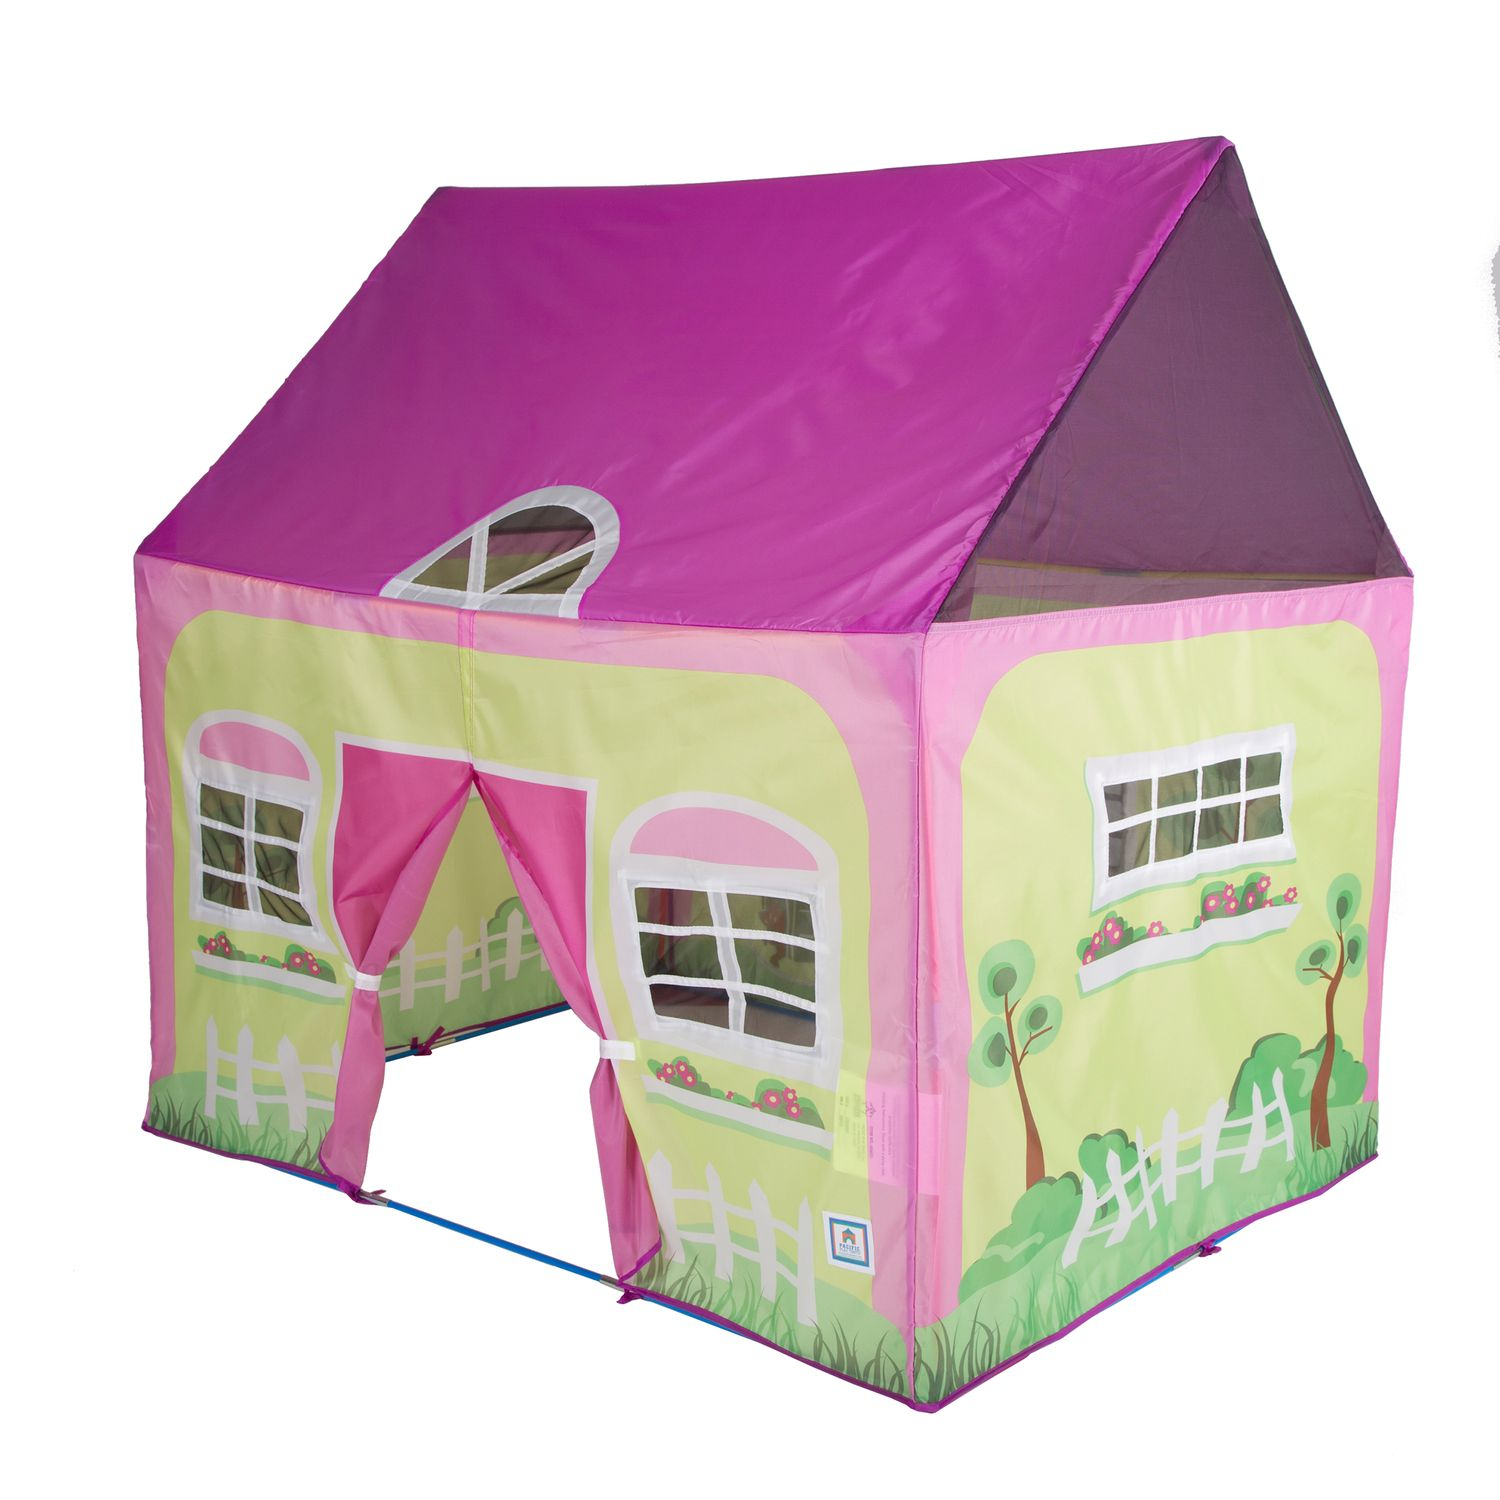 Pacific Play Tents Cottage Playhouse Tent  sc 1 st  Kohlu0027s & Play Tents Cottage Playhouse Tent